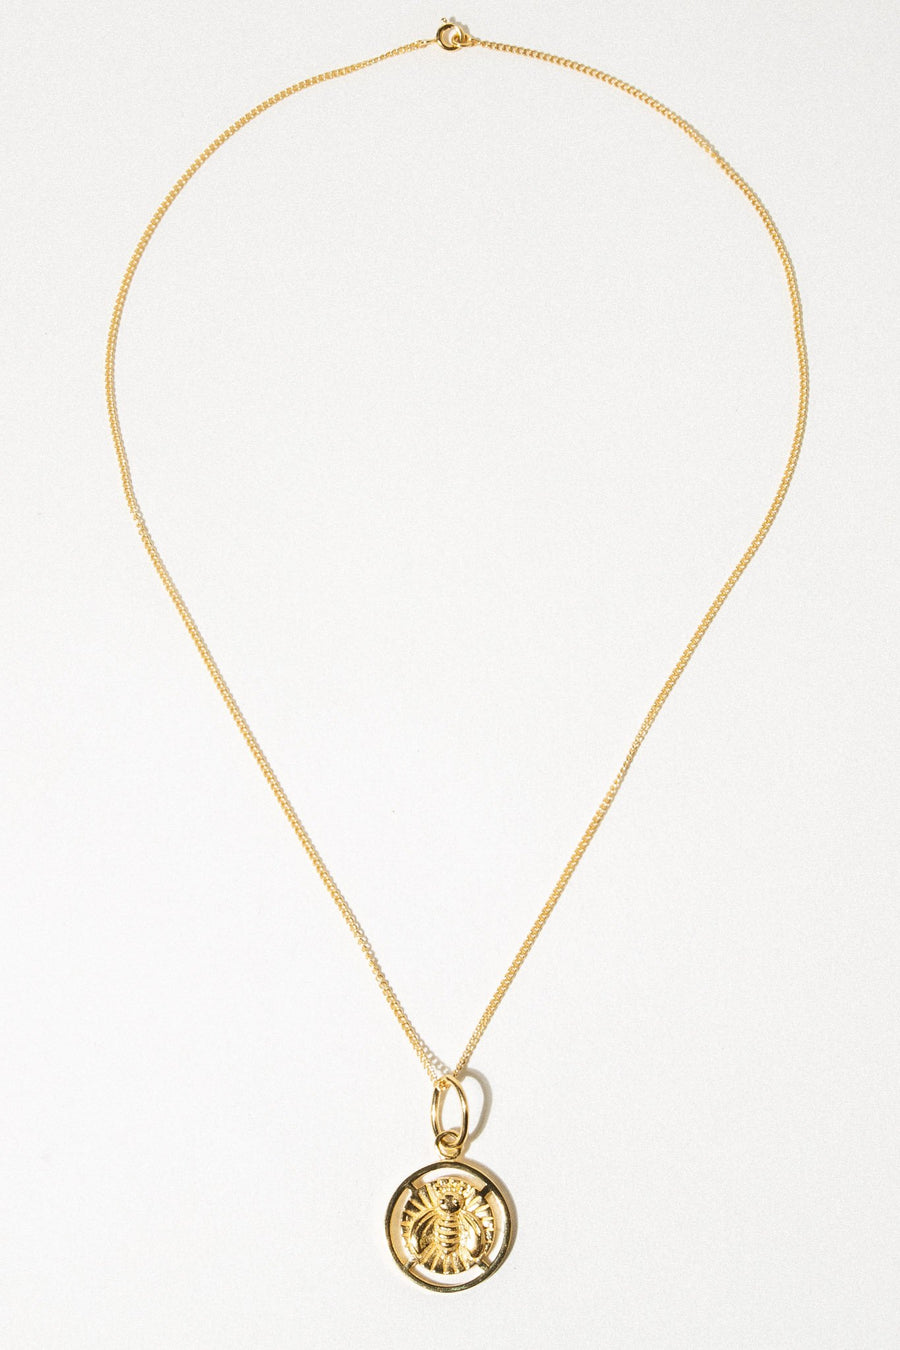 Wildthings Collectables Jewelry Gold / 18 Inches Reina Necklace